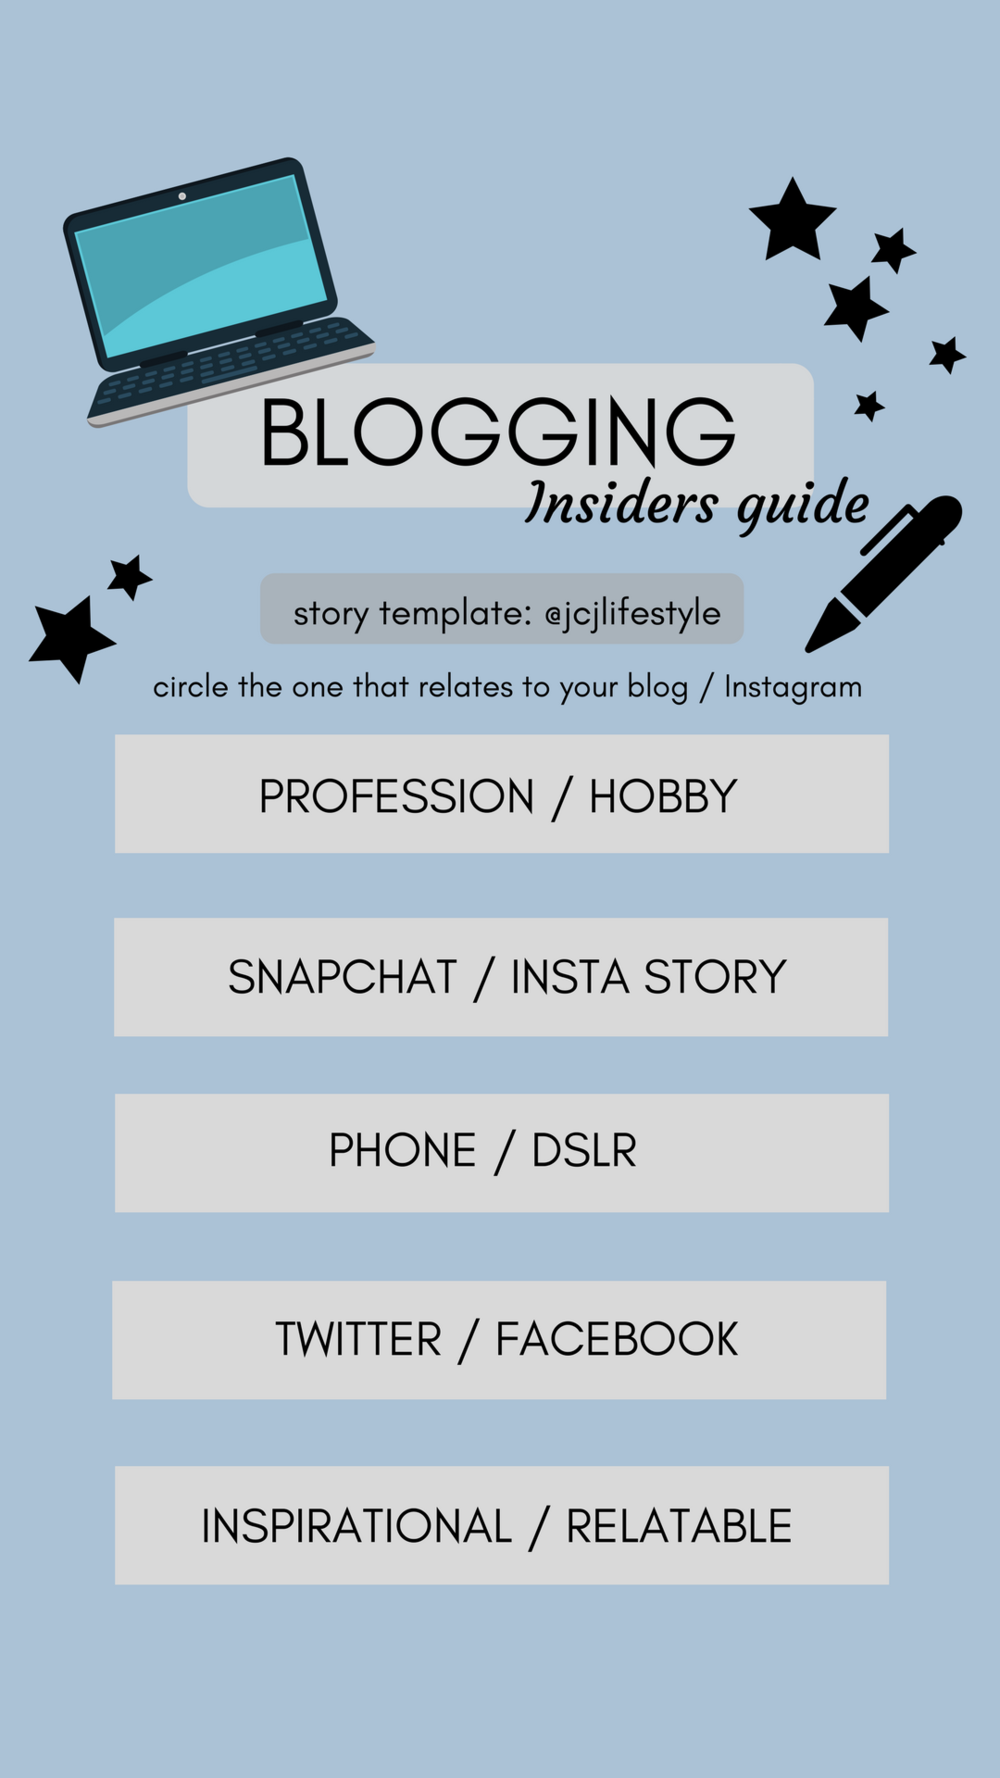 BLOGGING INSIDERS GUIDE 2.png